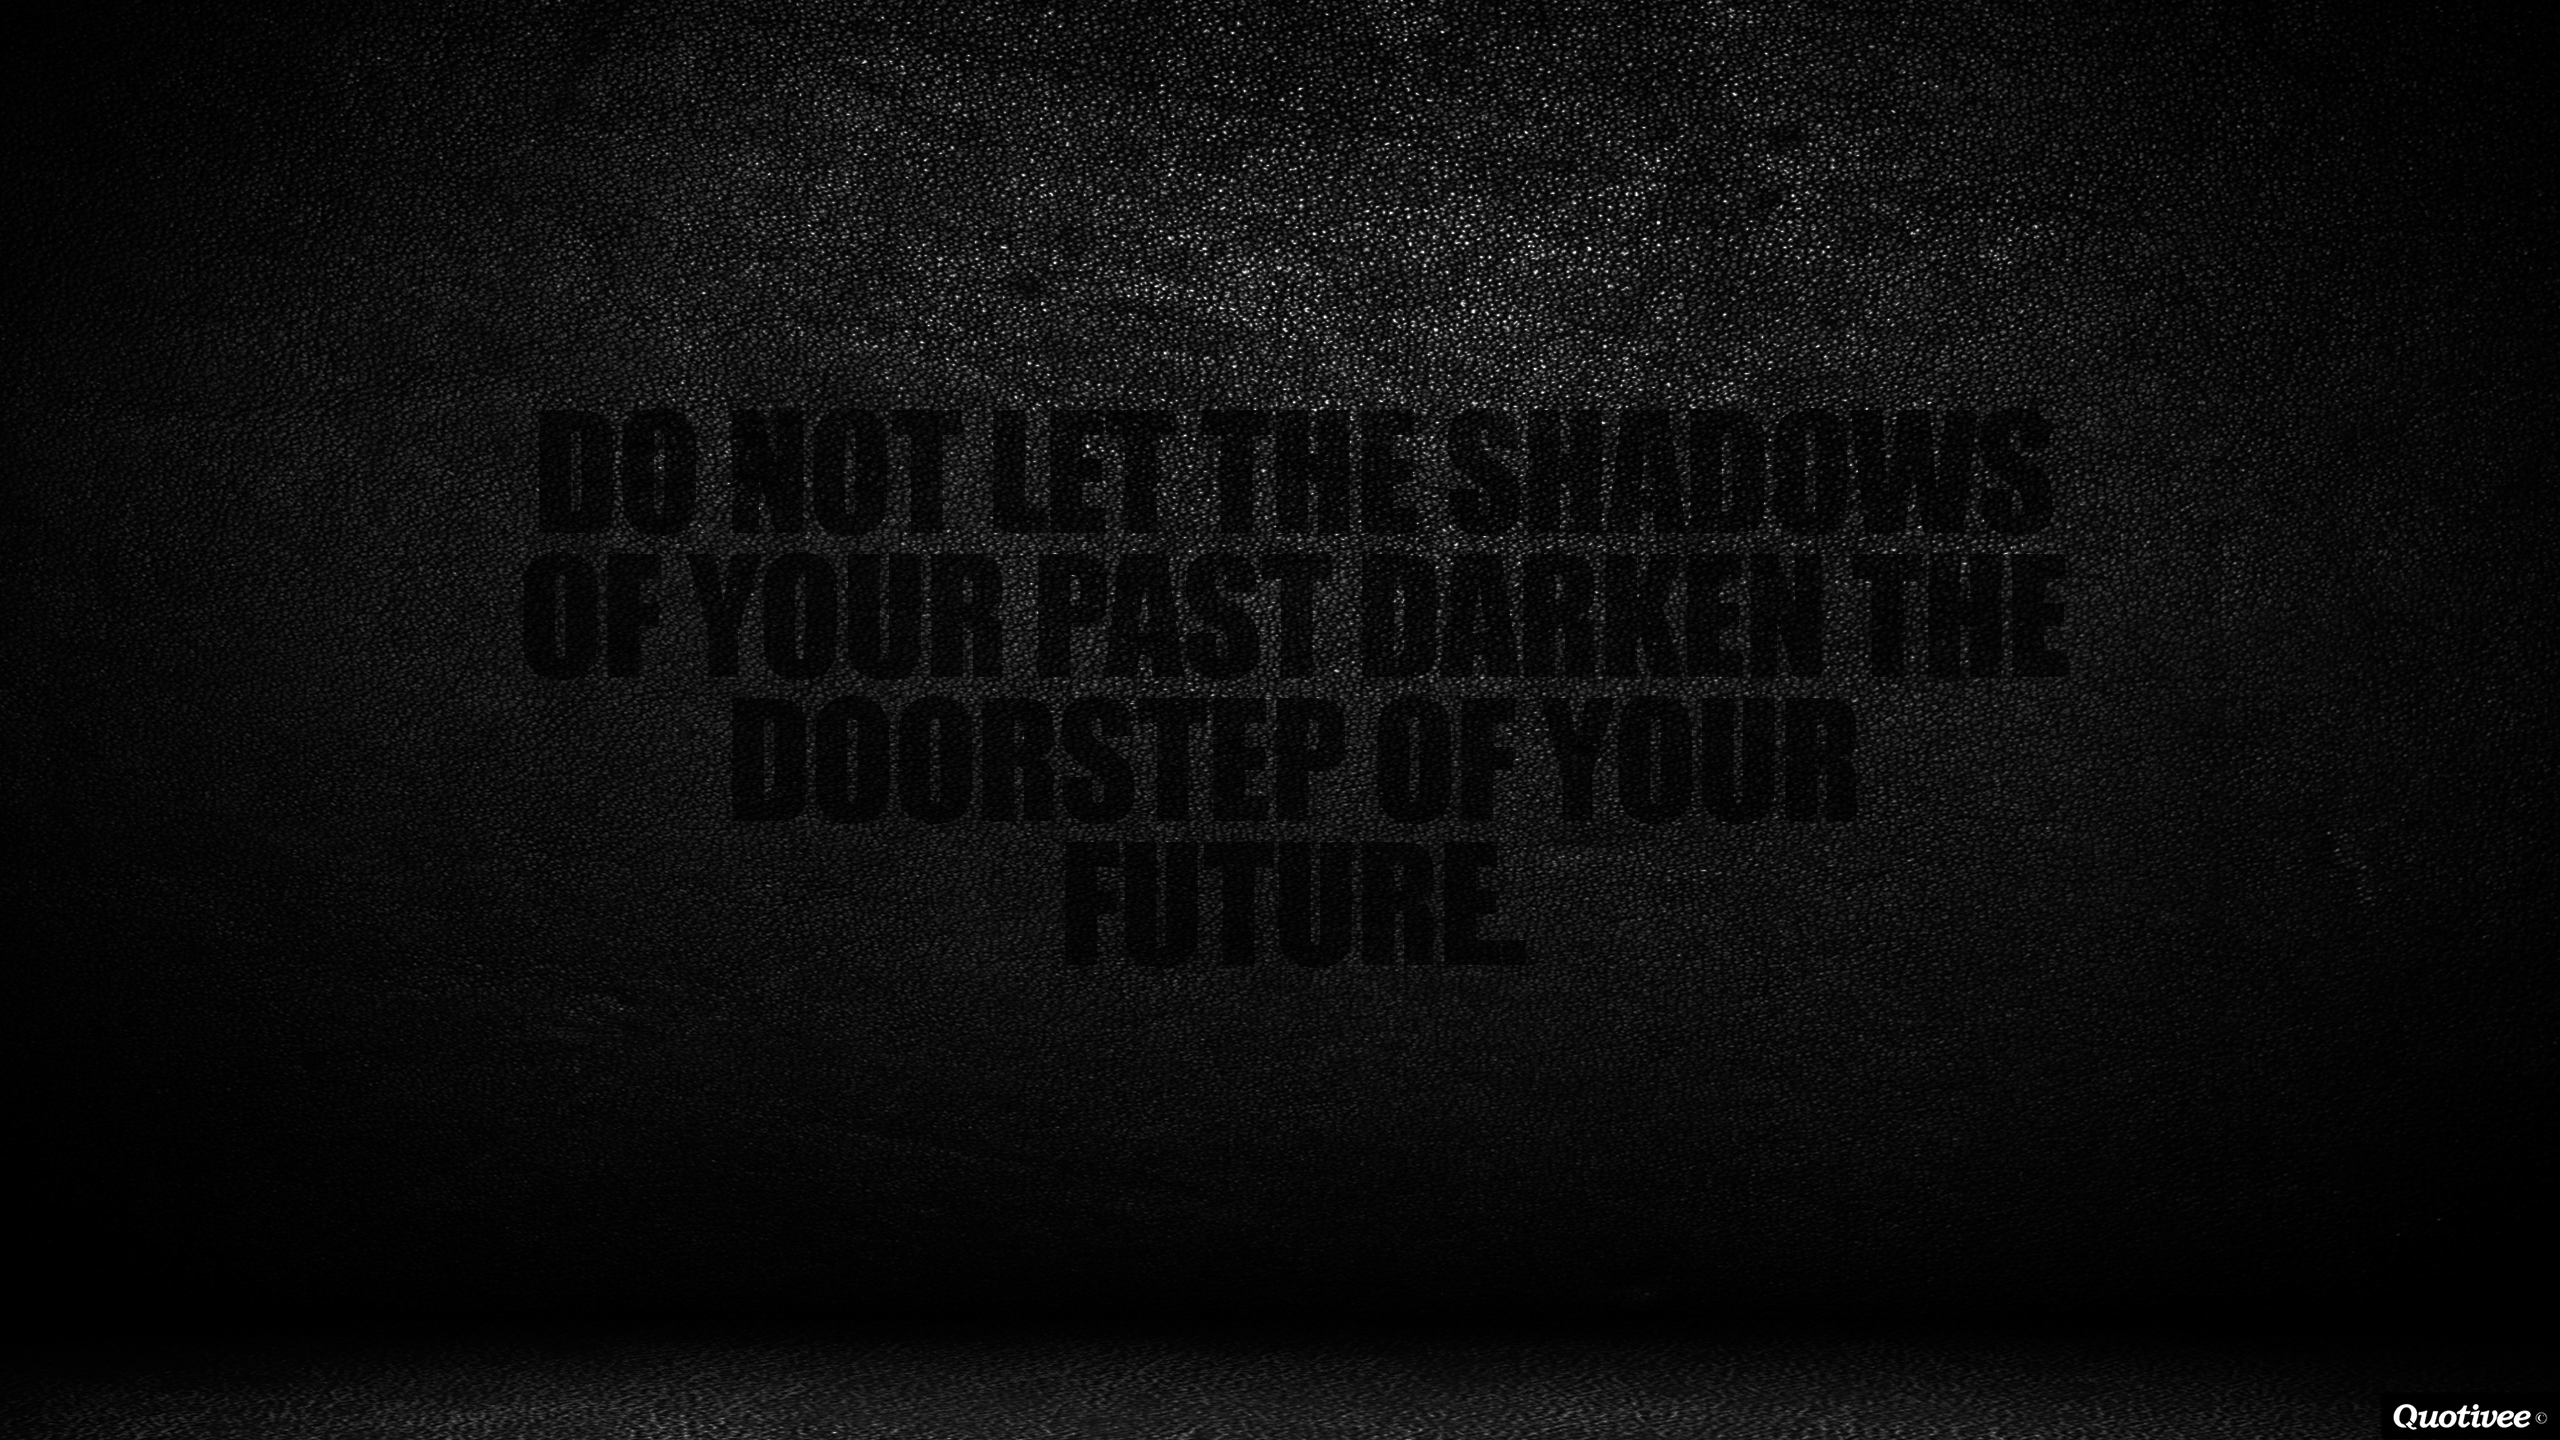 Passion Wallpaper Quote Shadows Of The Past Inspirational Quotes Quotivee